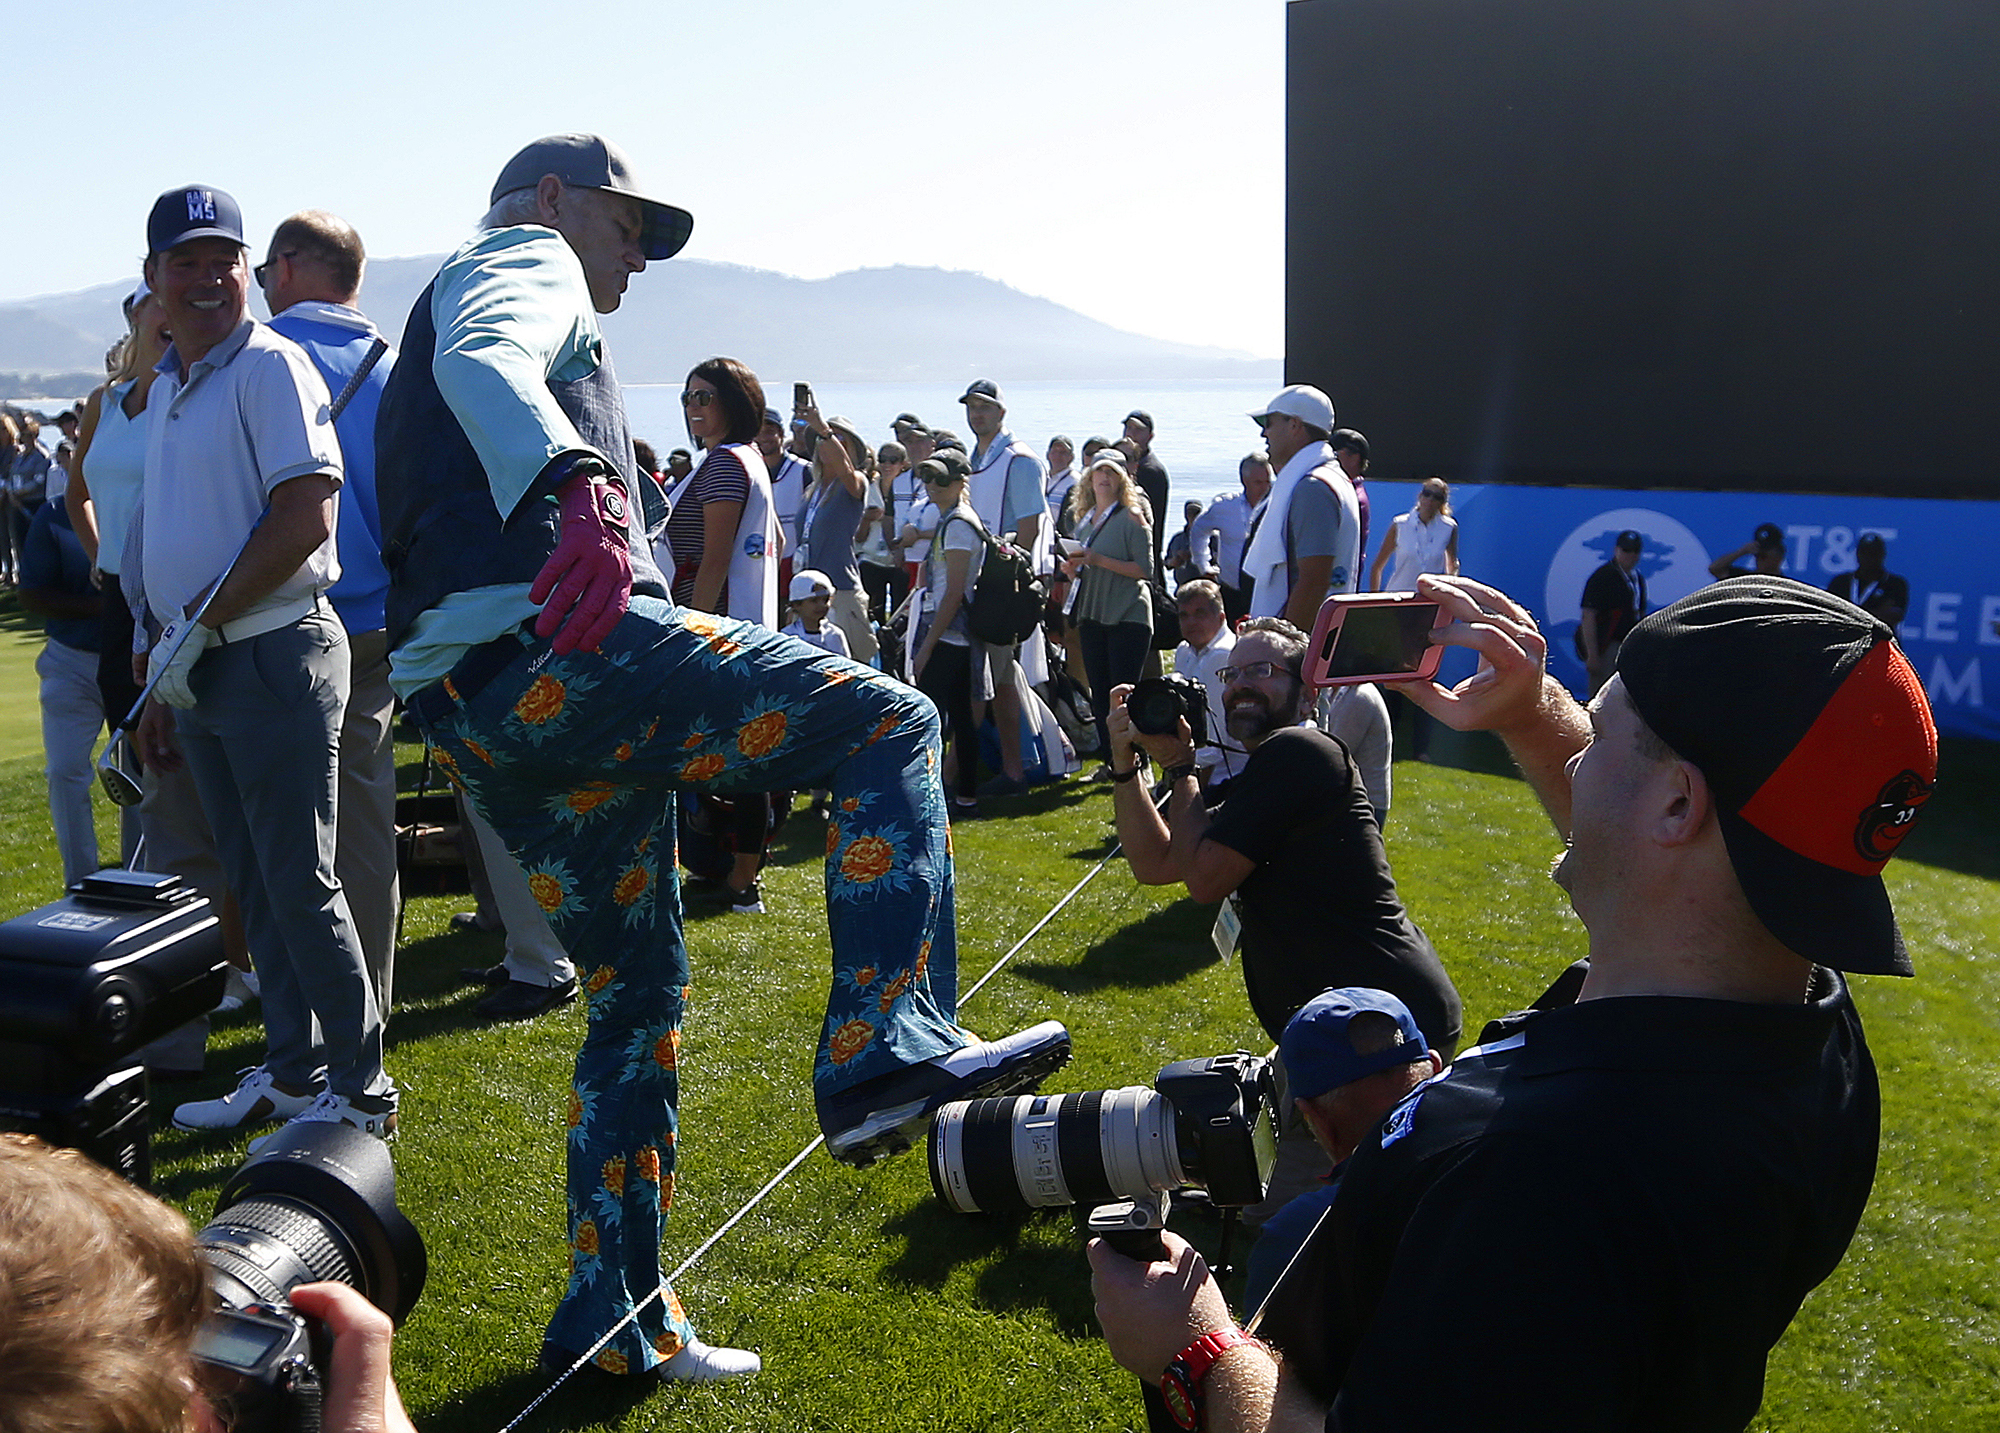 Lowry And McIlroy Off To Good Start At Pebble Beach